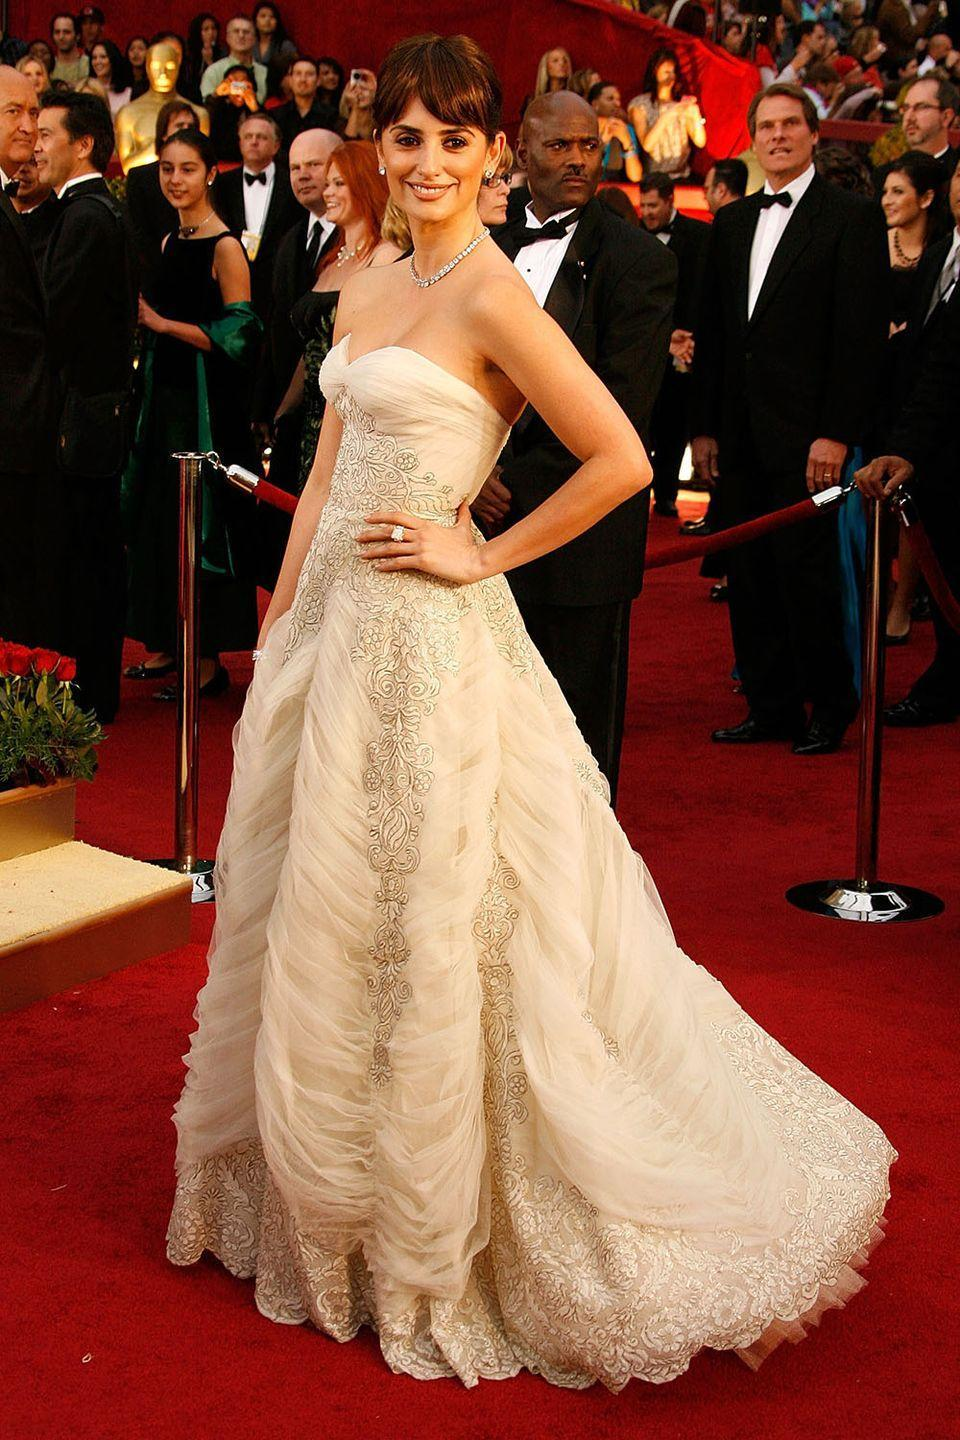 <p>Penelope Cruz channeled a fairytale princess in a vintage Pierre Balmain gown when she won Best Supporting Actress for <em>Vicky Cristina Barcelona</em>.</p>